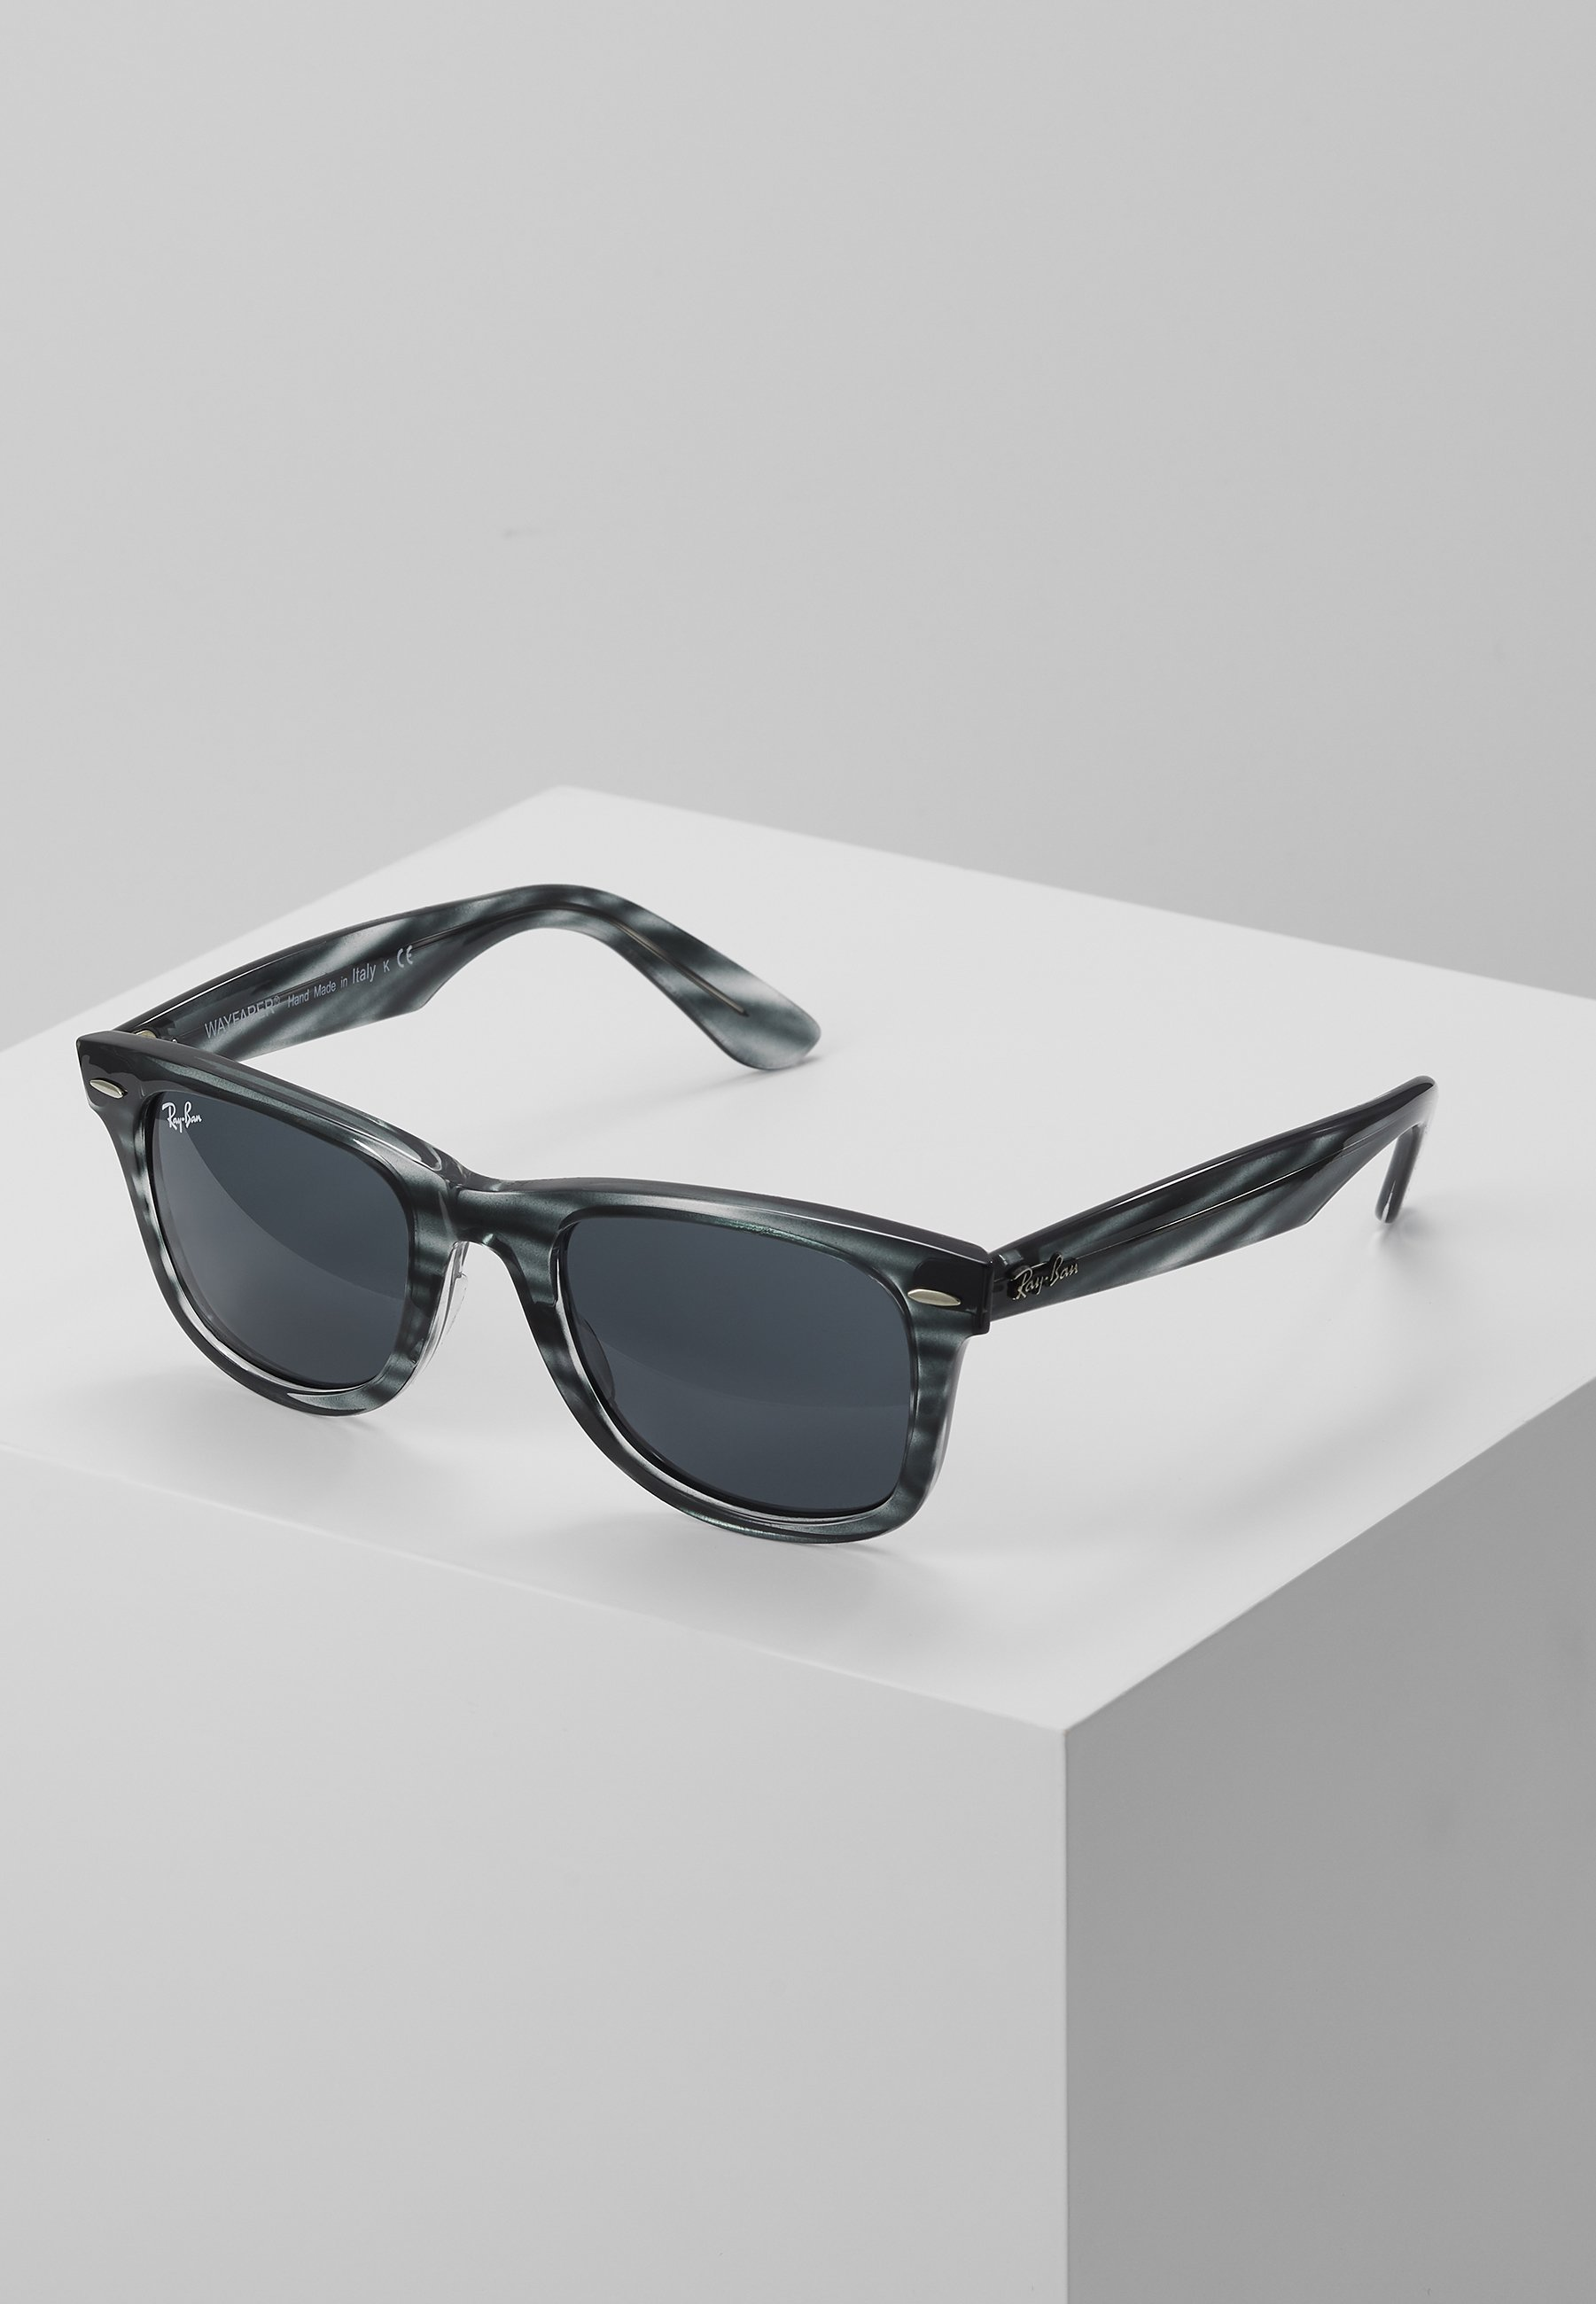 Excellent Top Quality Accessories Ray-Ban Sunglasses black oNXxgdZFU Kw4A7Vcgo